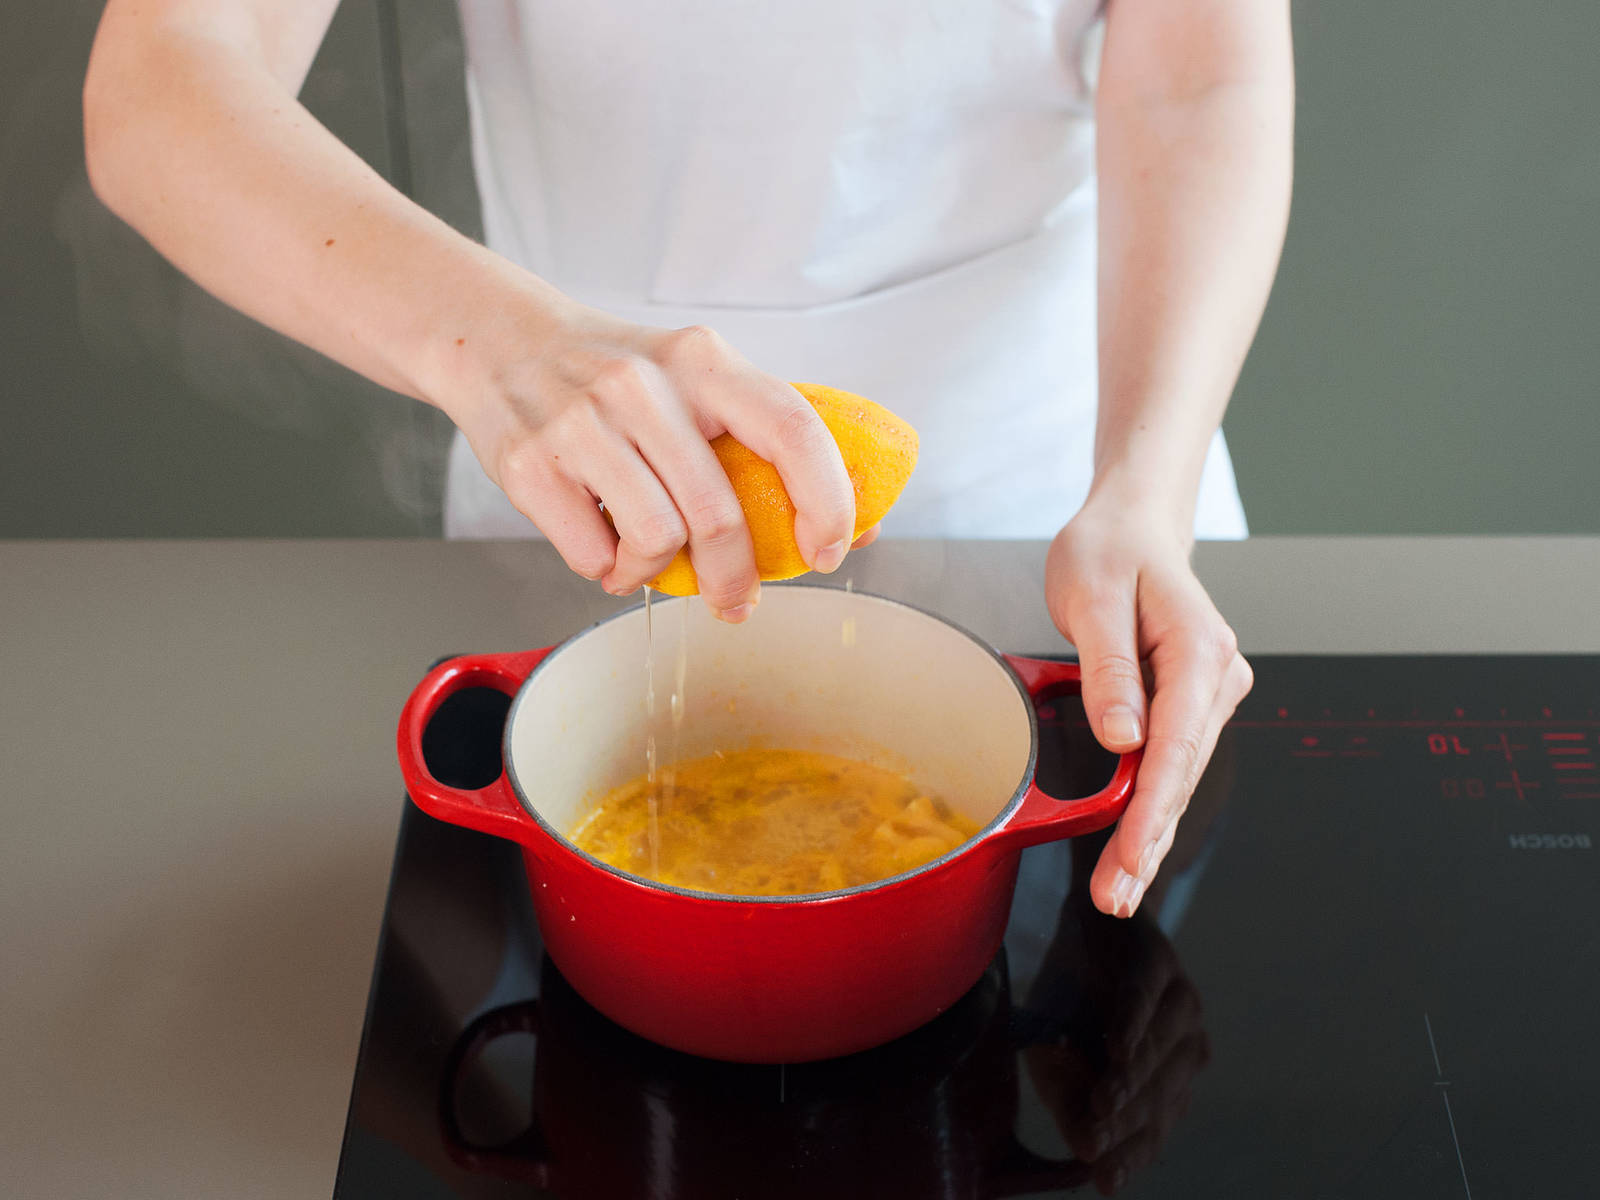 For the sauce: zest one third of oranges and set aside. Add juice and flesh from oranges to a small saucepan and cook over medium heat until reduced by half.